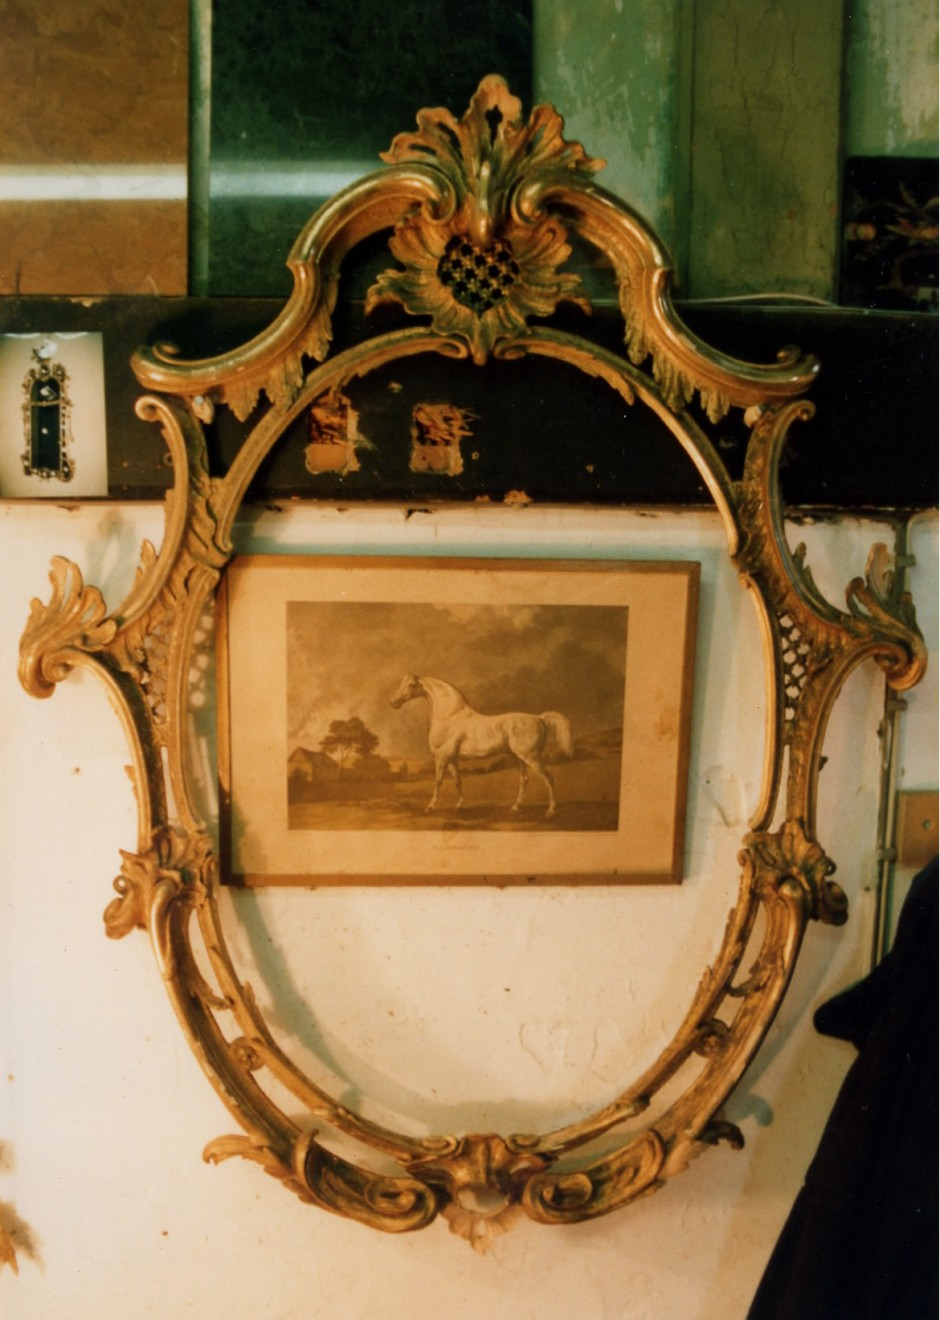 The Finished Restored Mirror Frame. - mirror frame restores